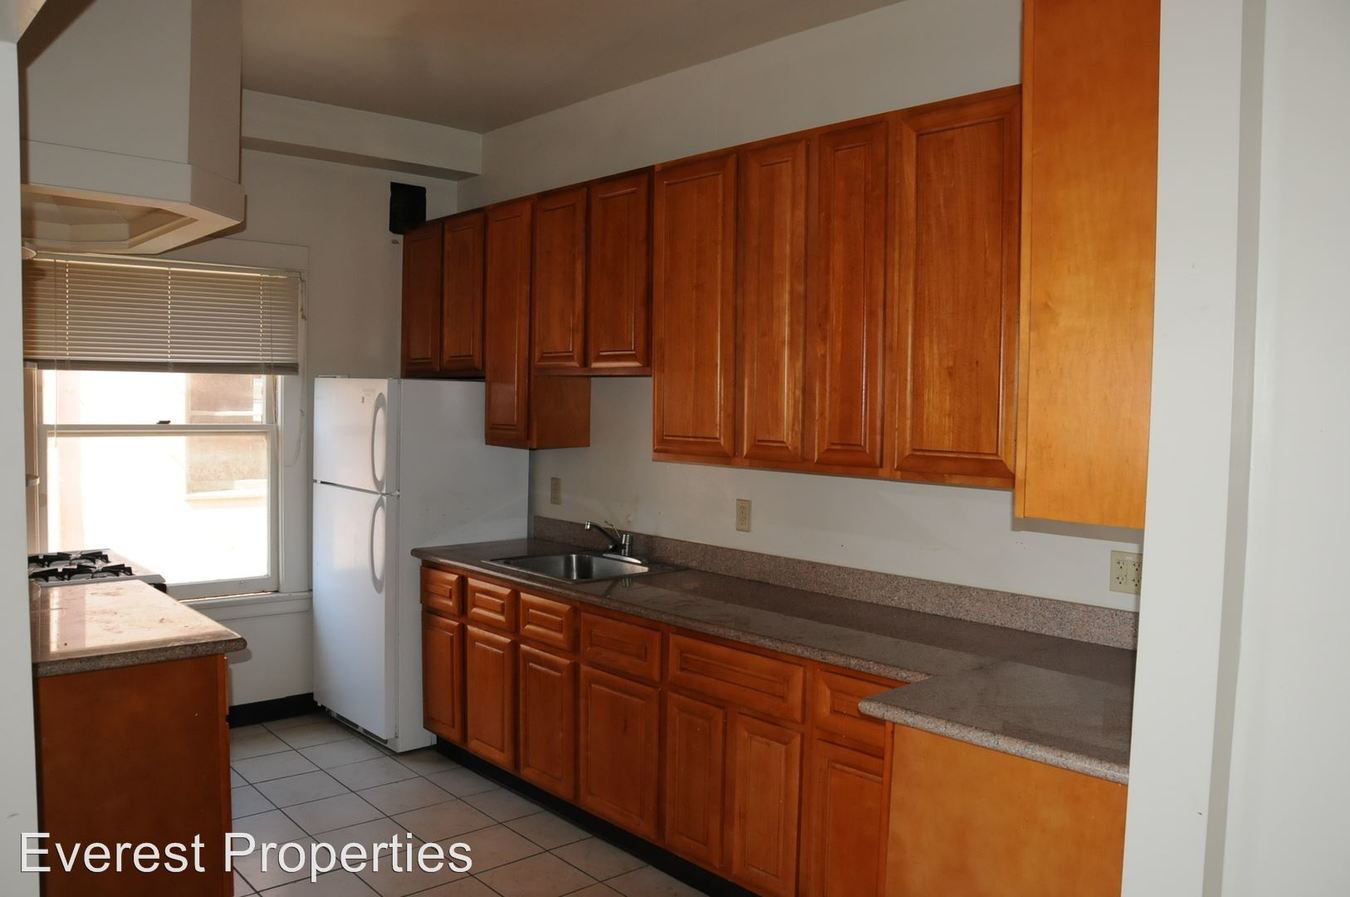 2 Bedrooms 1 Bathroom Apartment for rent at 2300-2350 Shattuck Ave. in Berkeley, CA